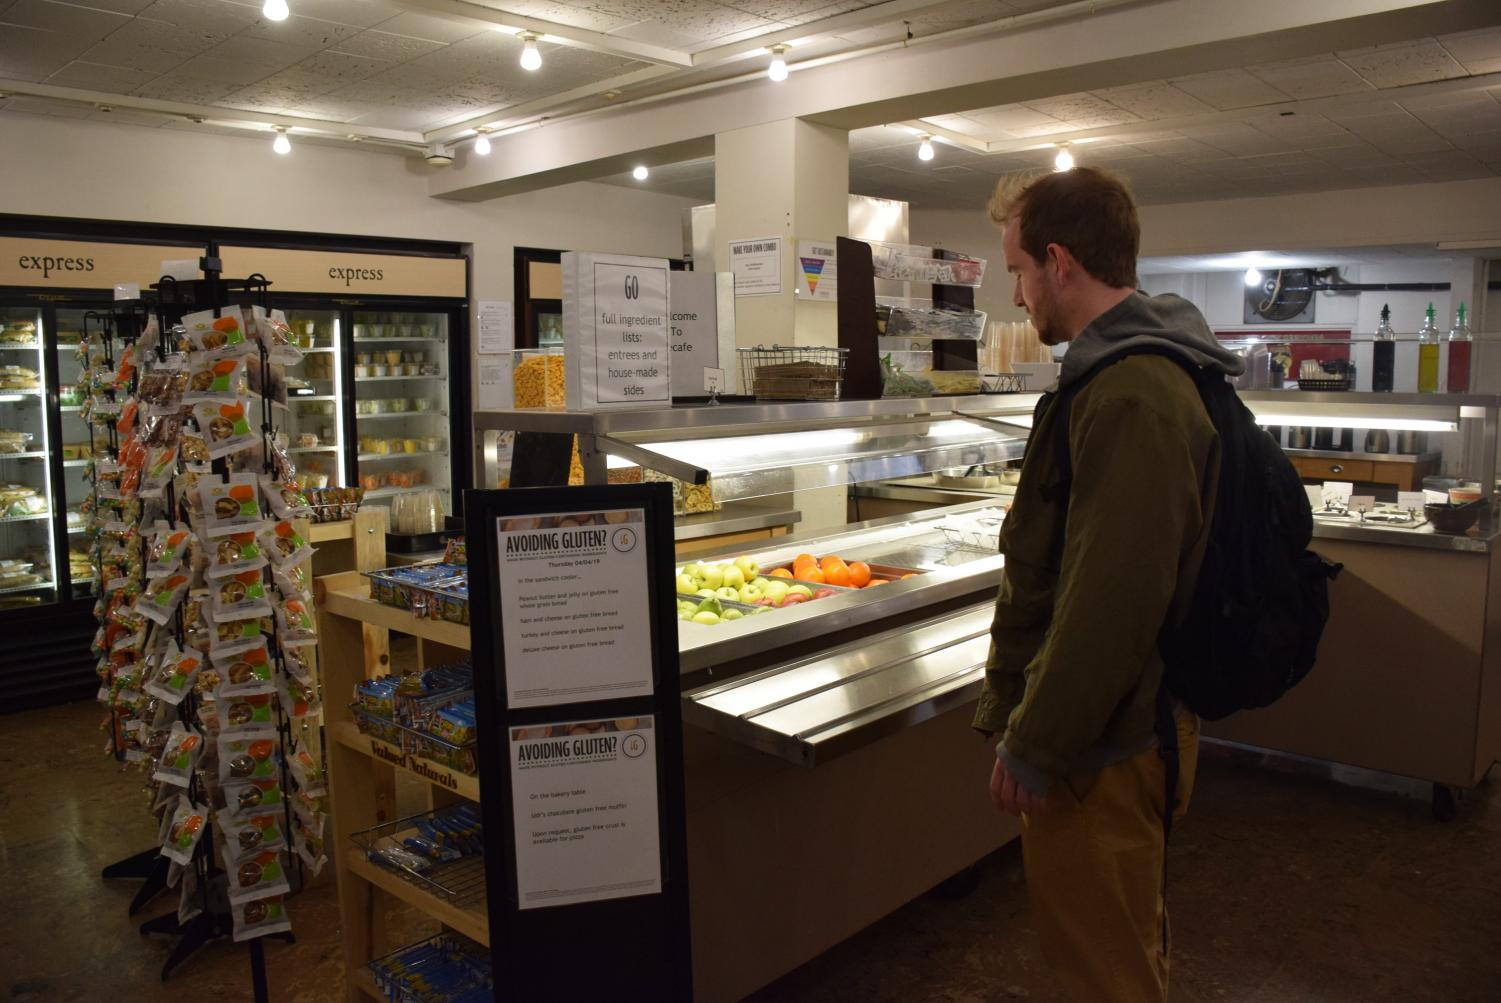 College senior Noah Binford checks out DeCafé's lunchtime offerings.